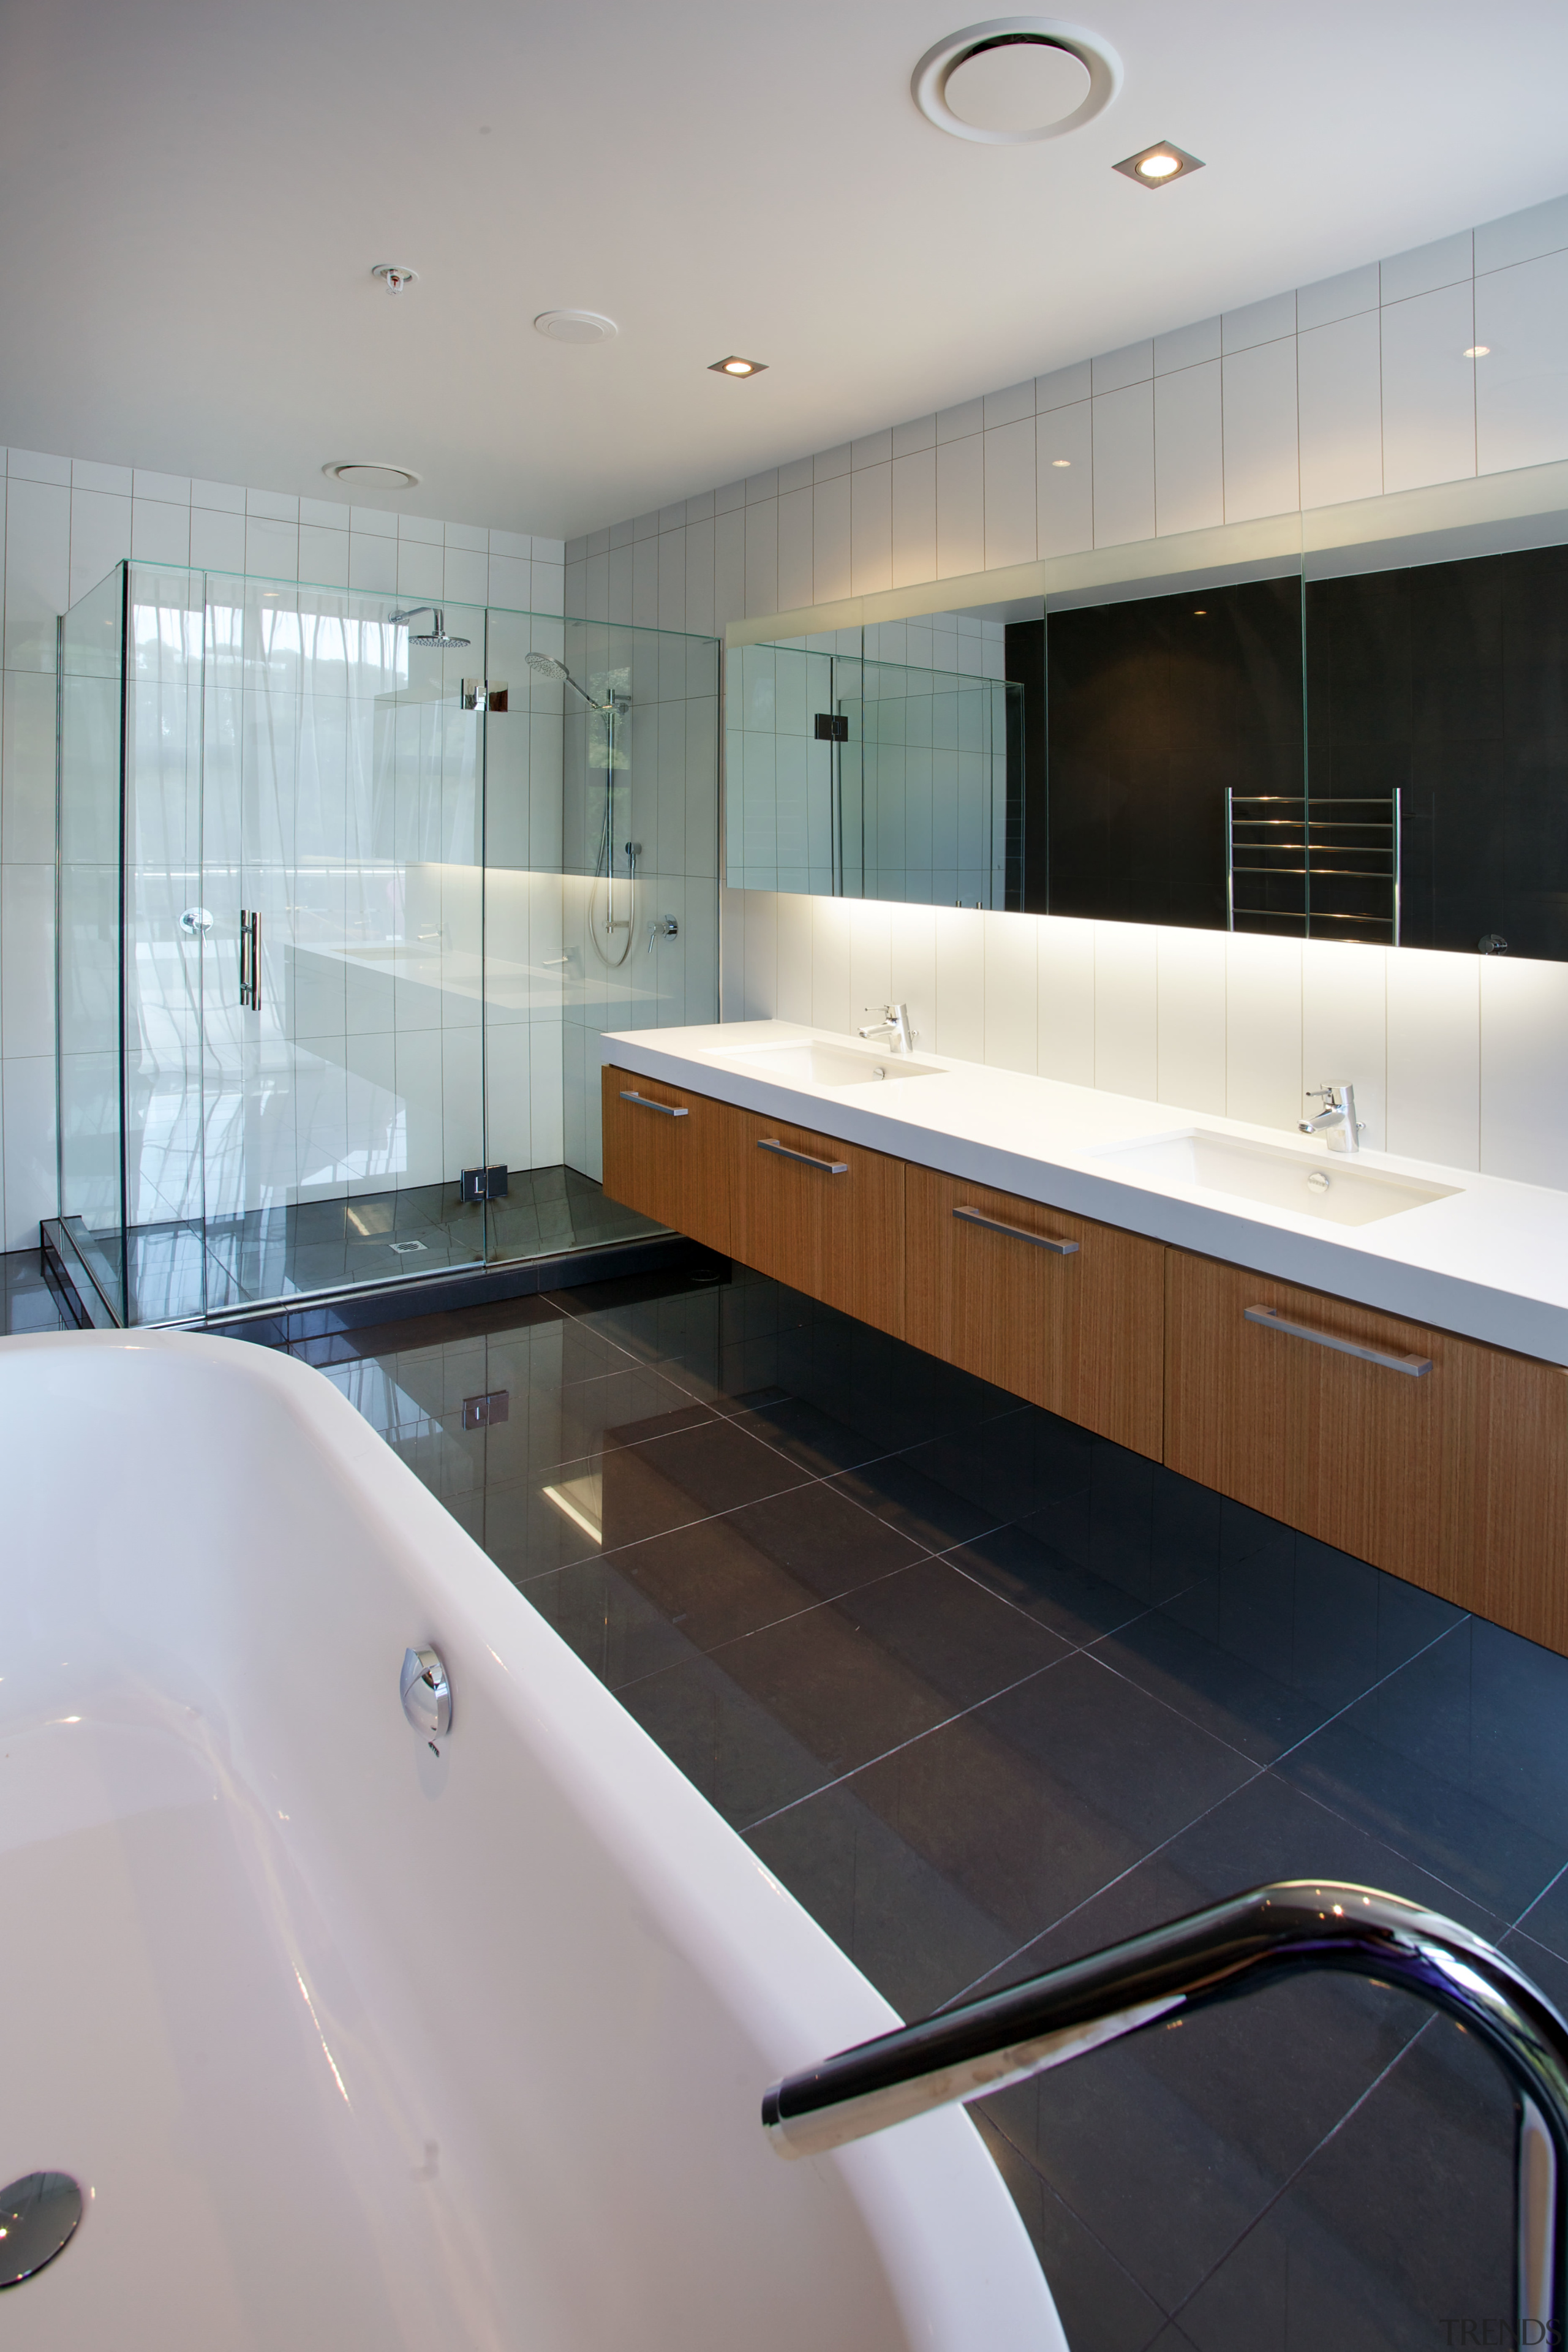 Spacious master bathrooms are a feature of the architecture, bathroom, bathtub, floor, interior design, property, room, sink, tile, gray